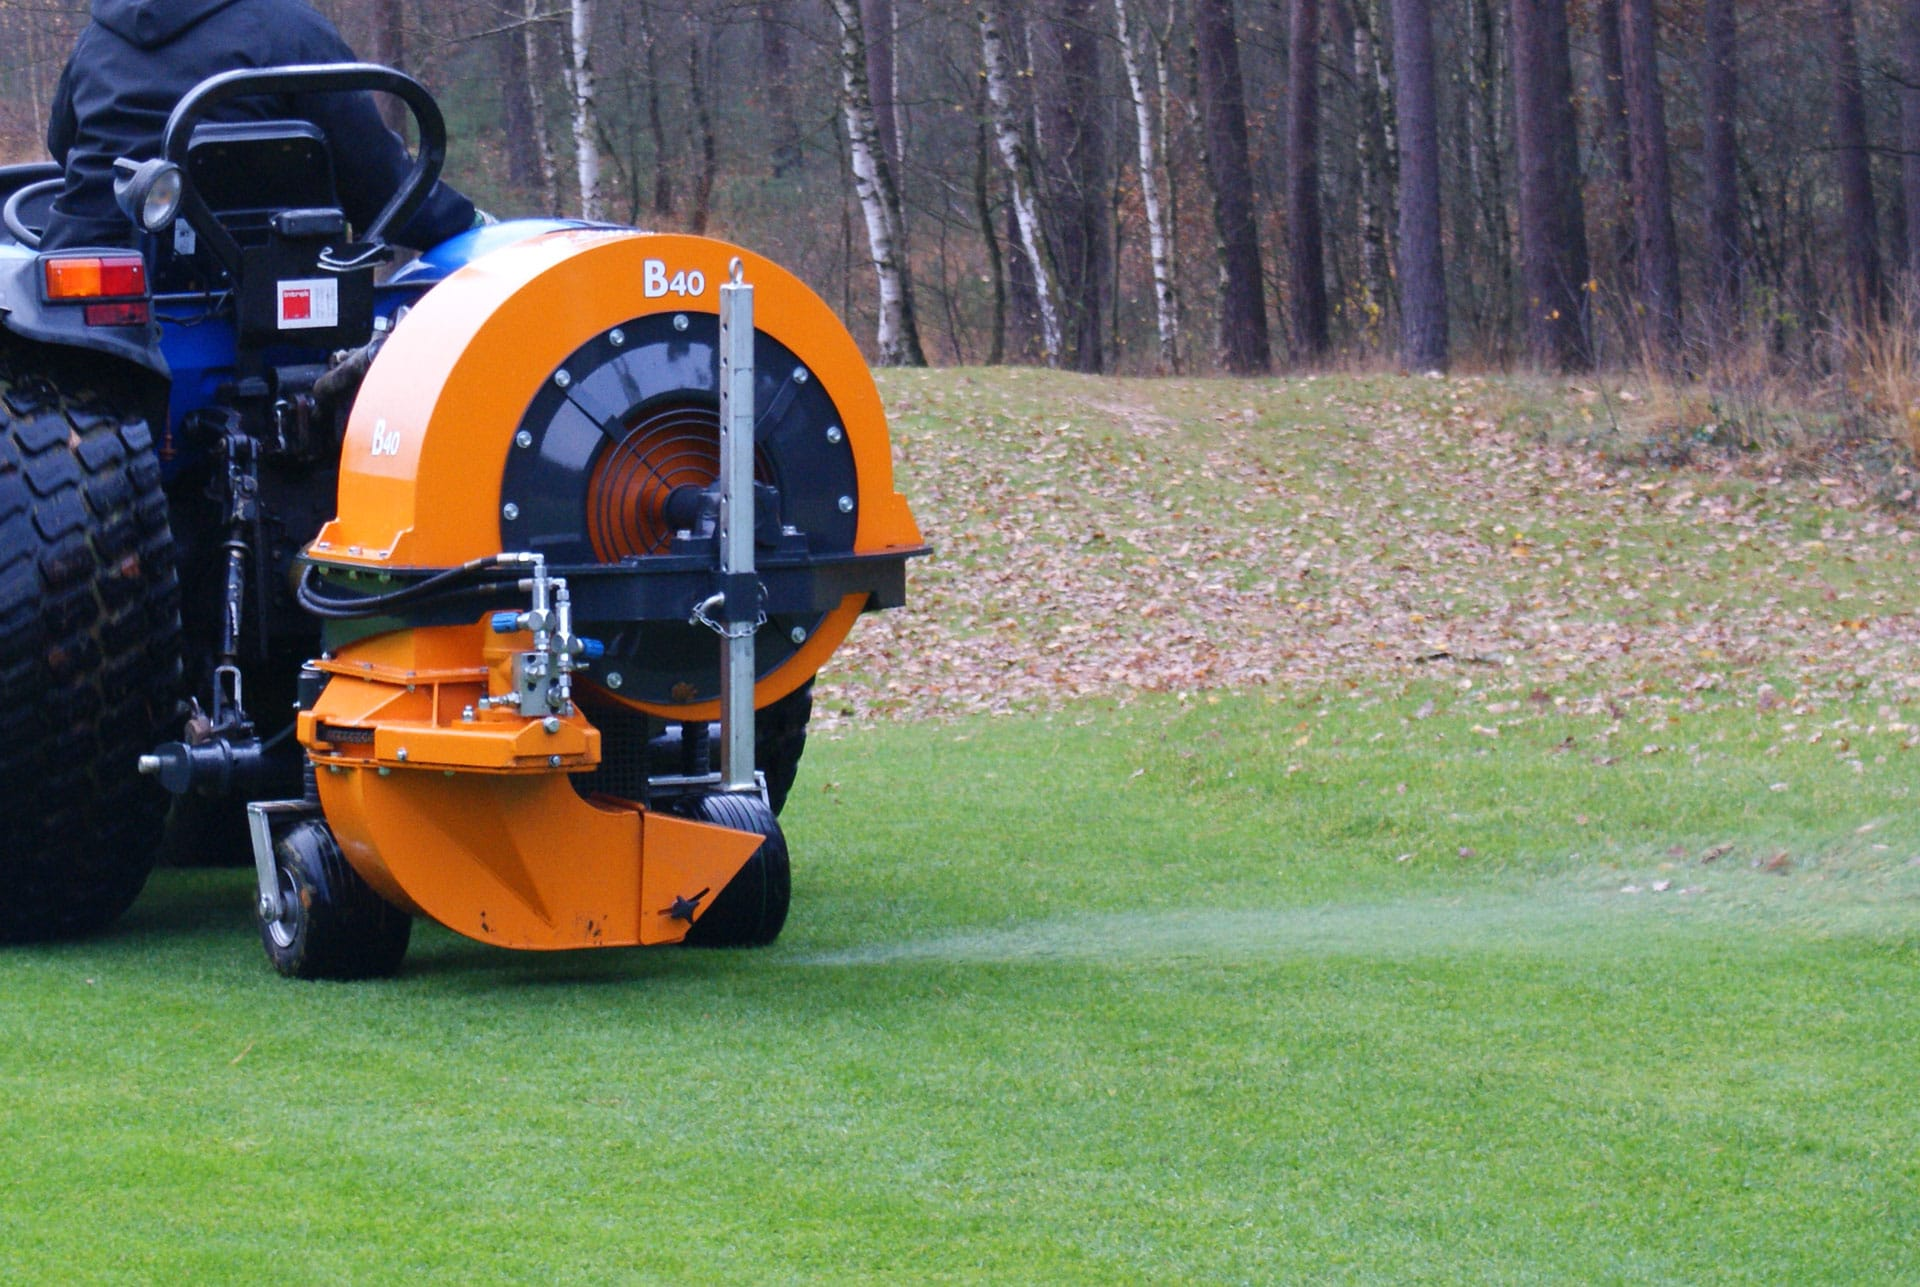 Votex B20 B40 B60 Blowers Campey Turf Care Systems